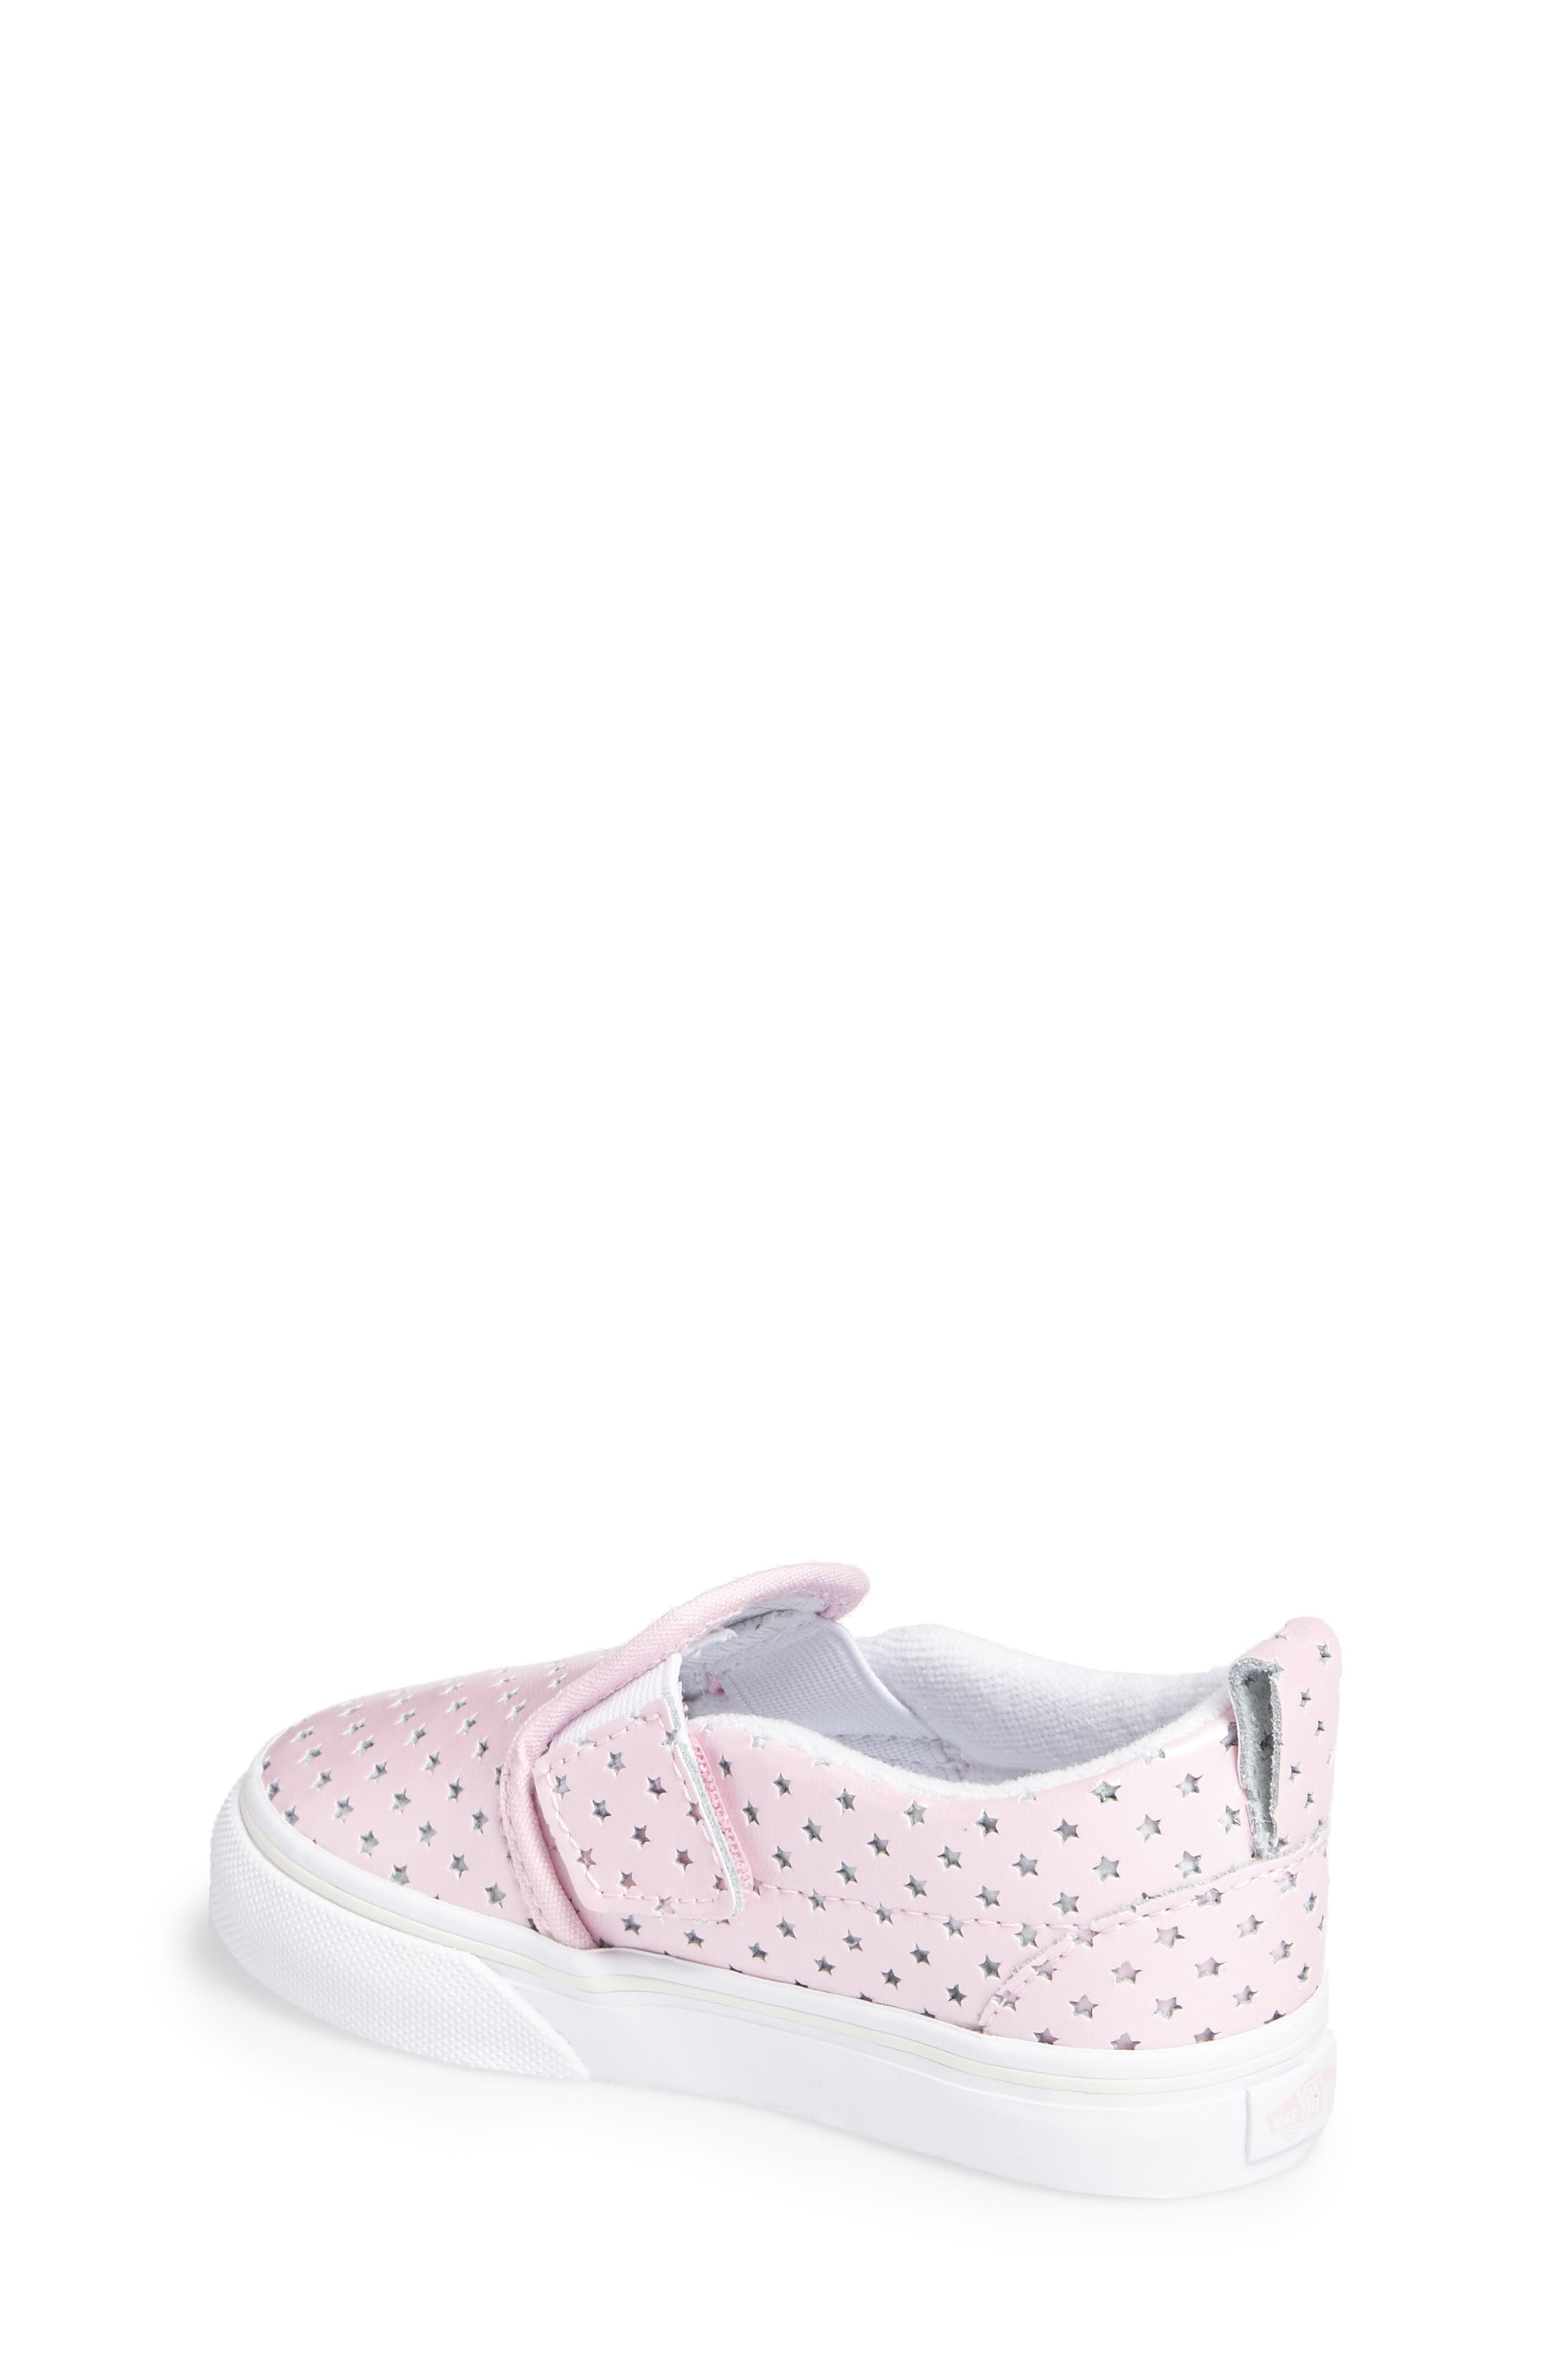 Classic Perforated Slip-On Sneaker,                             Alternate thumbnail 2, color,                             650